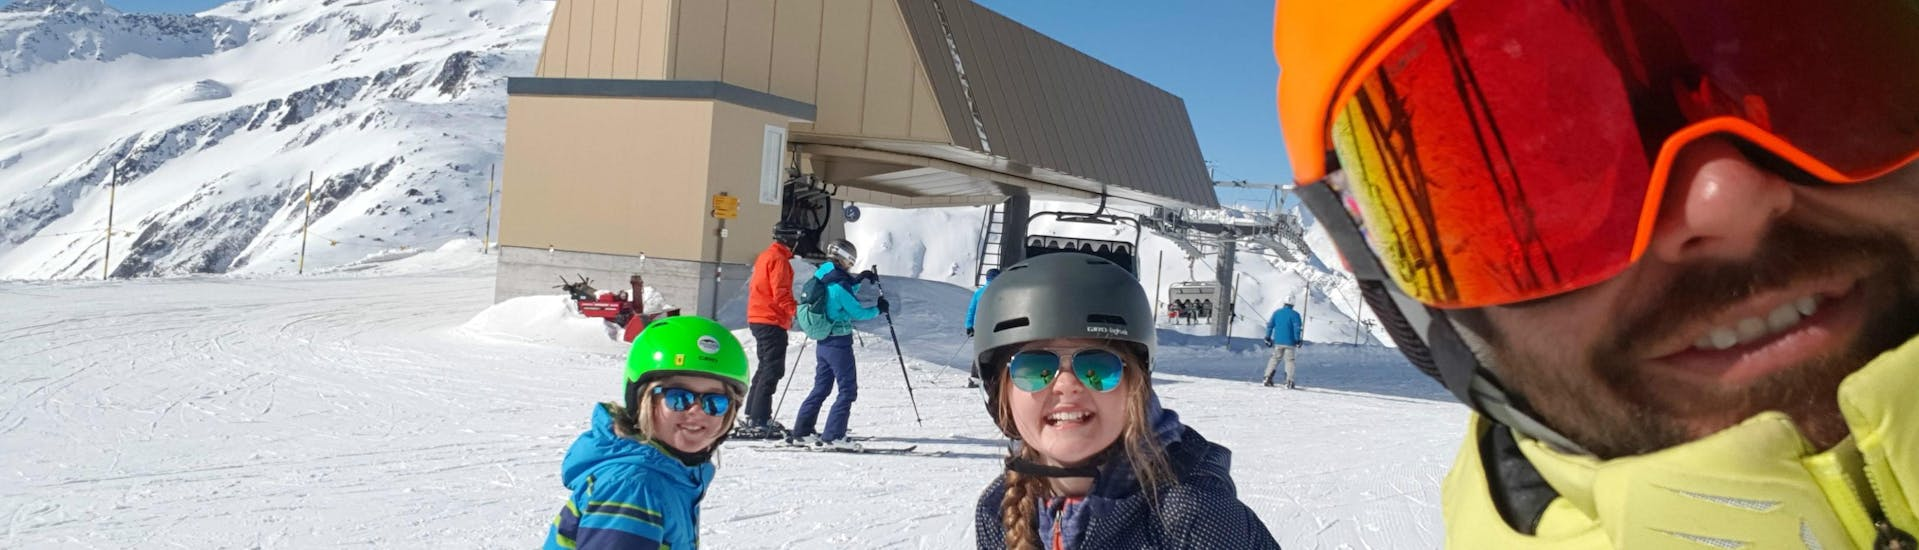 """Two participants of the Kids Ski Lessons """"Ils Camutschs"""" (4-17 years) are posing for a picture with their ski instructor from Skischule Monntains."""